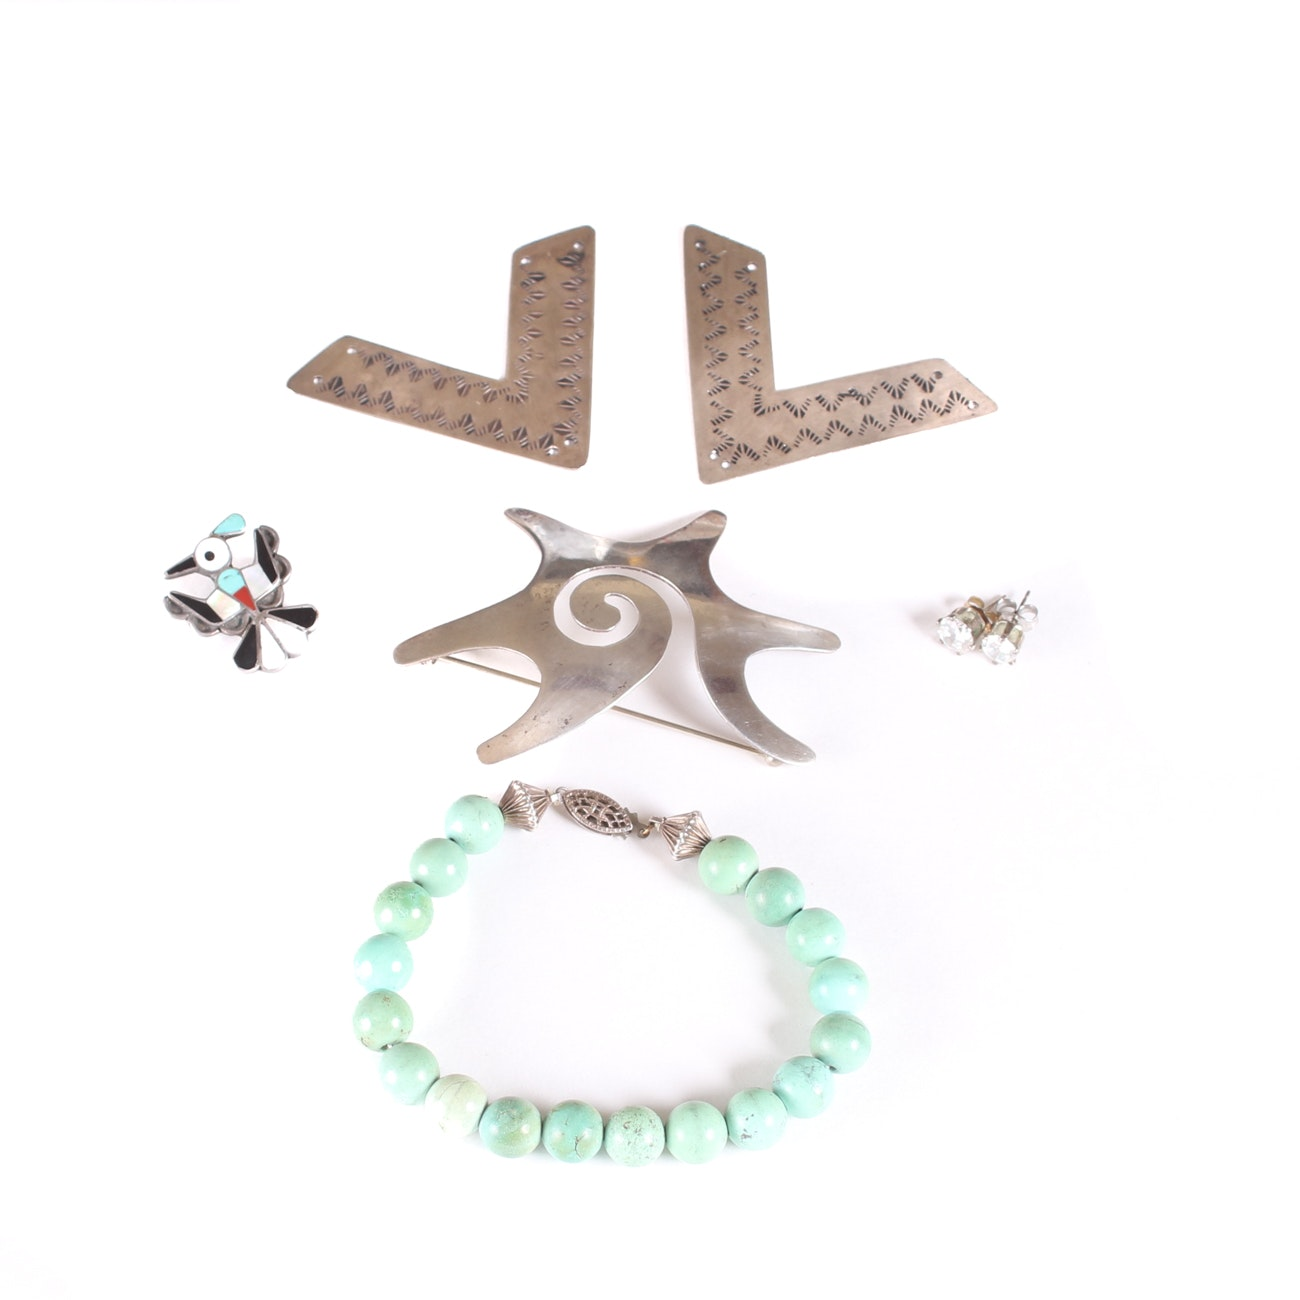 Assortment of Sterling Silver and Turquoise Jewelry